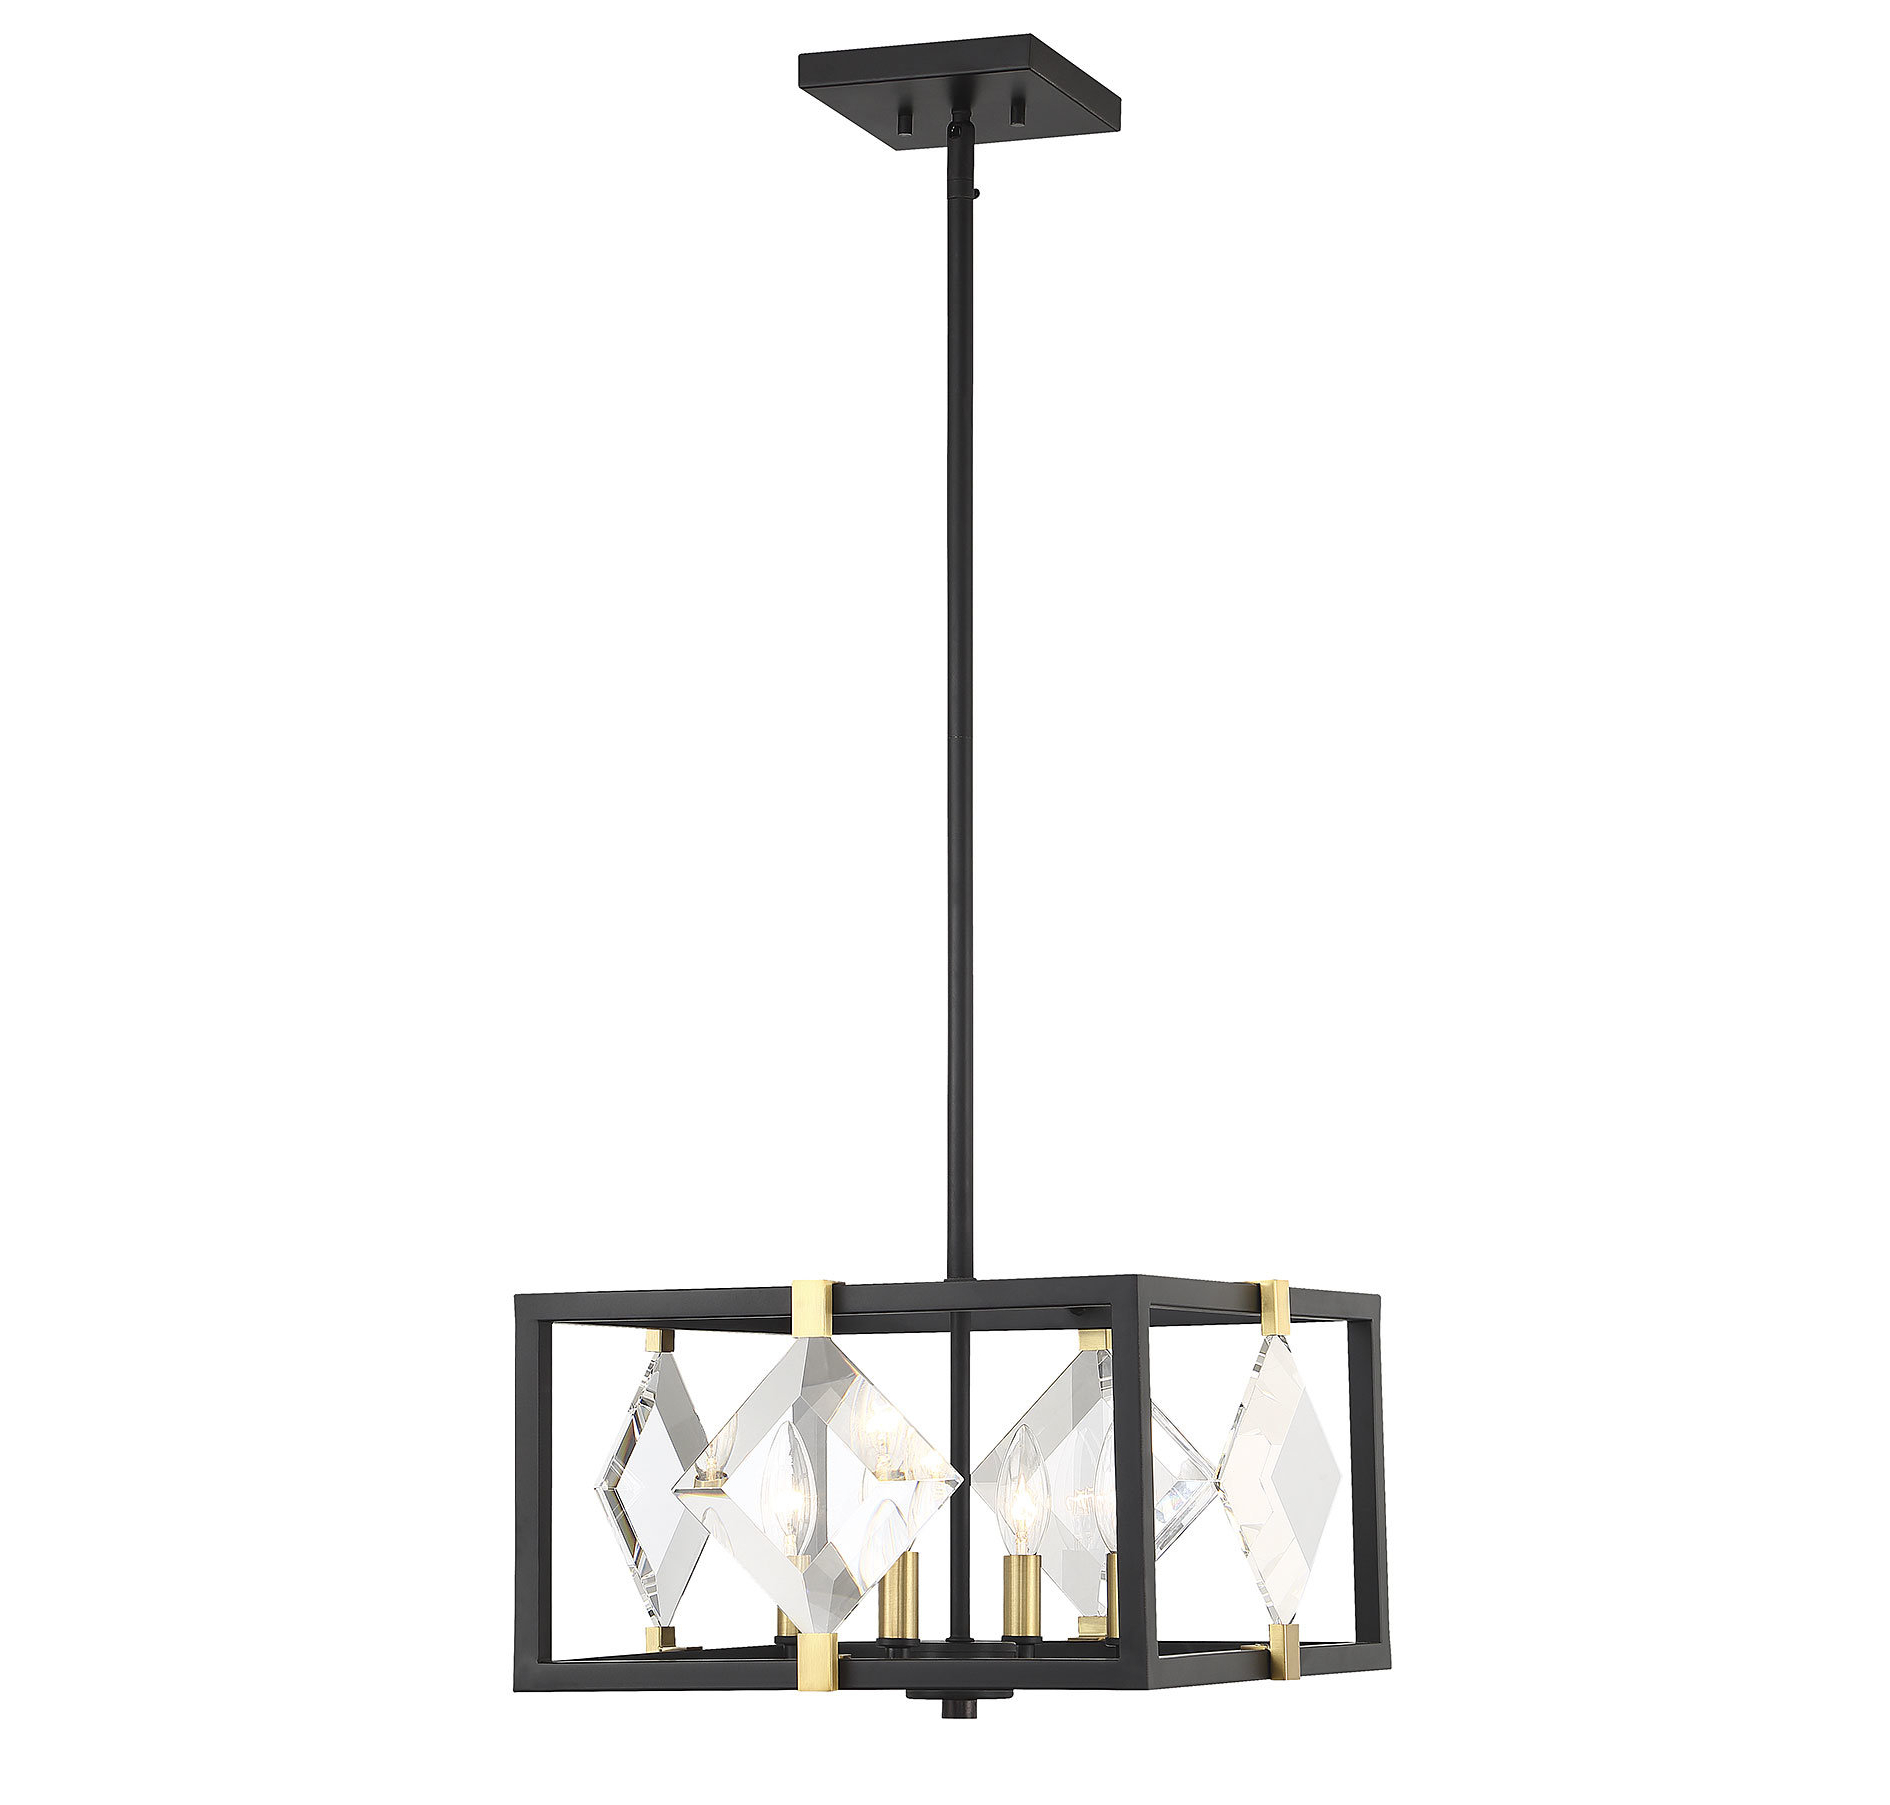 Most Popular Delon 4 Light Square Chandeliers For Nowak 4 Light Square/rectangle Chandelier (View 13 of 20)